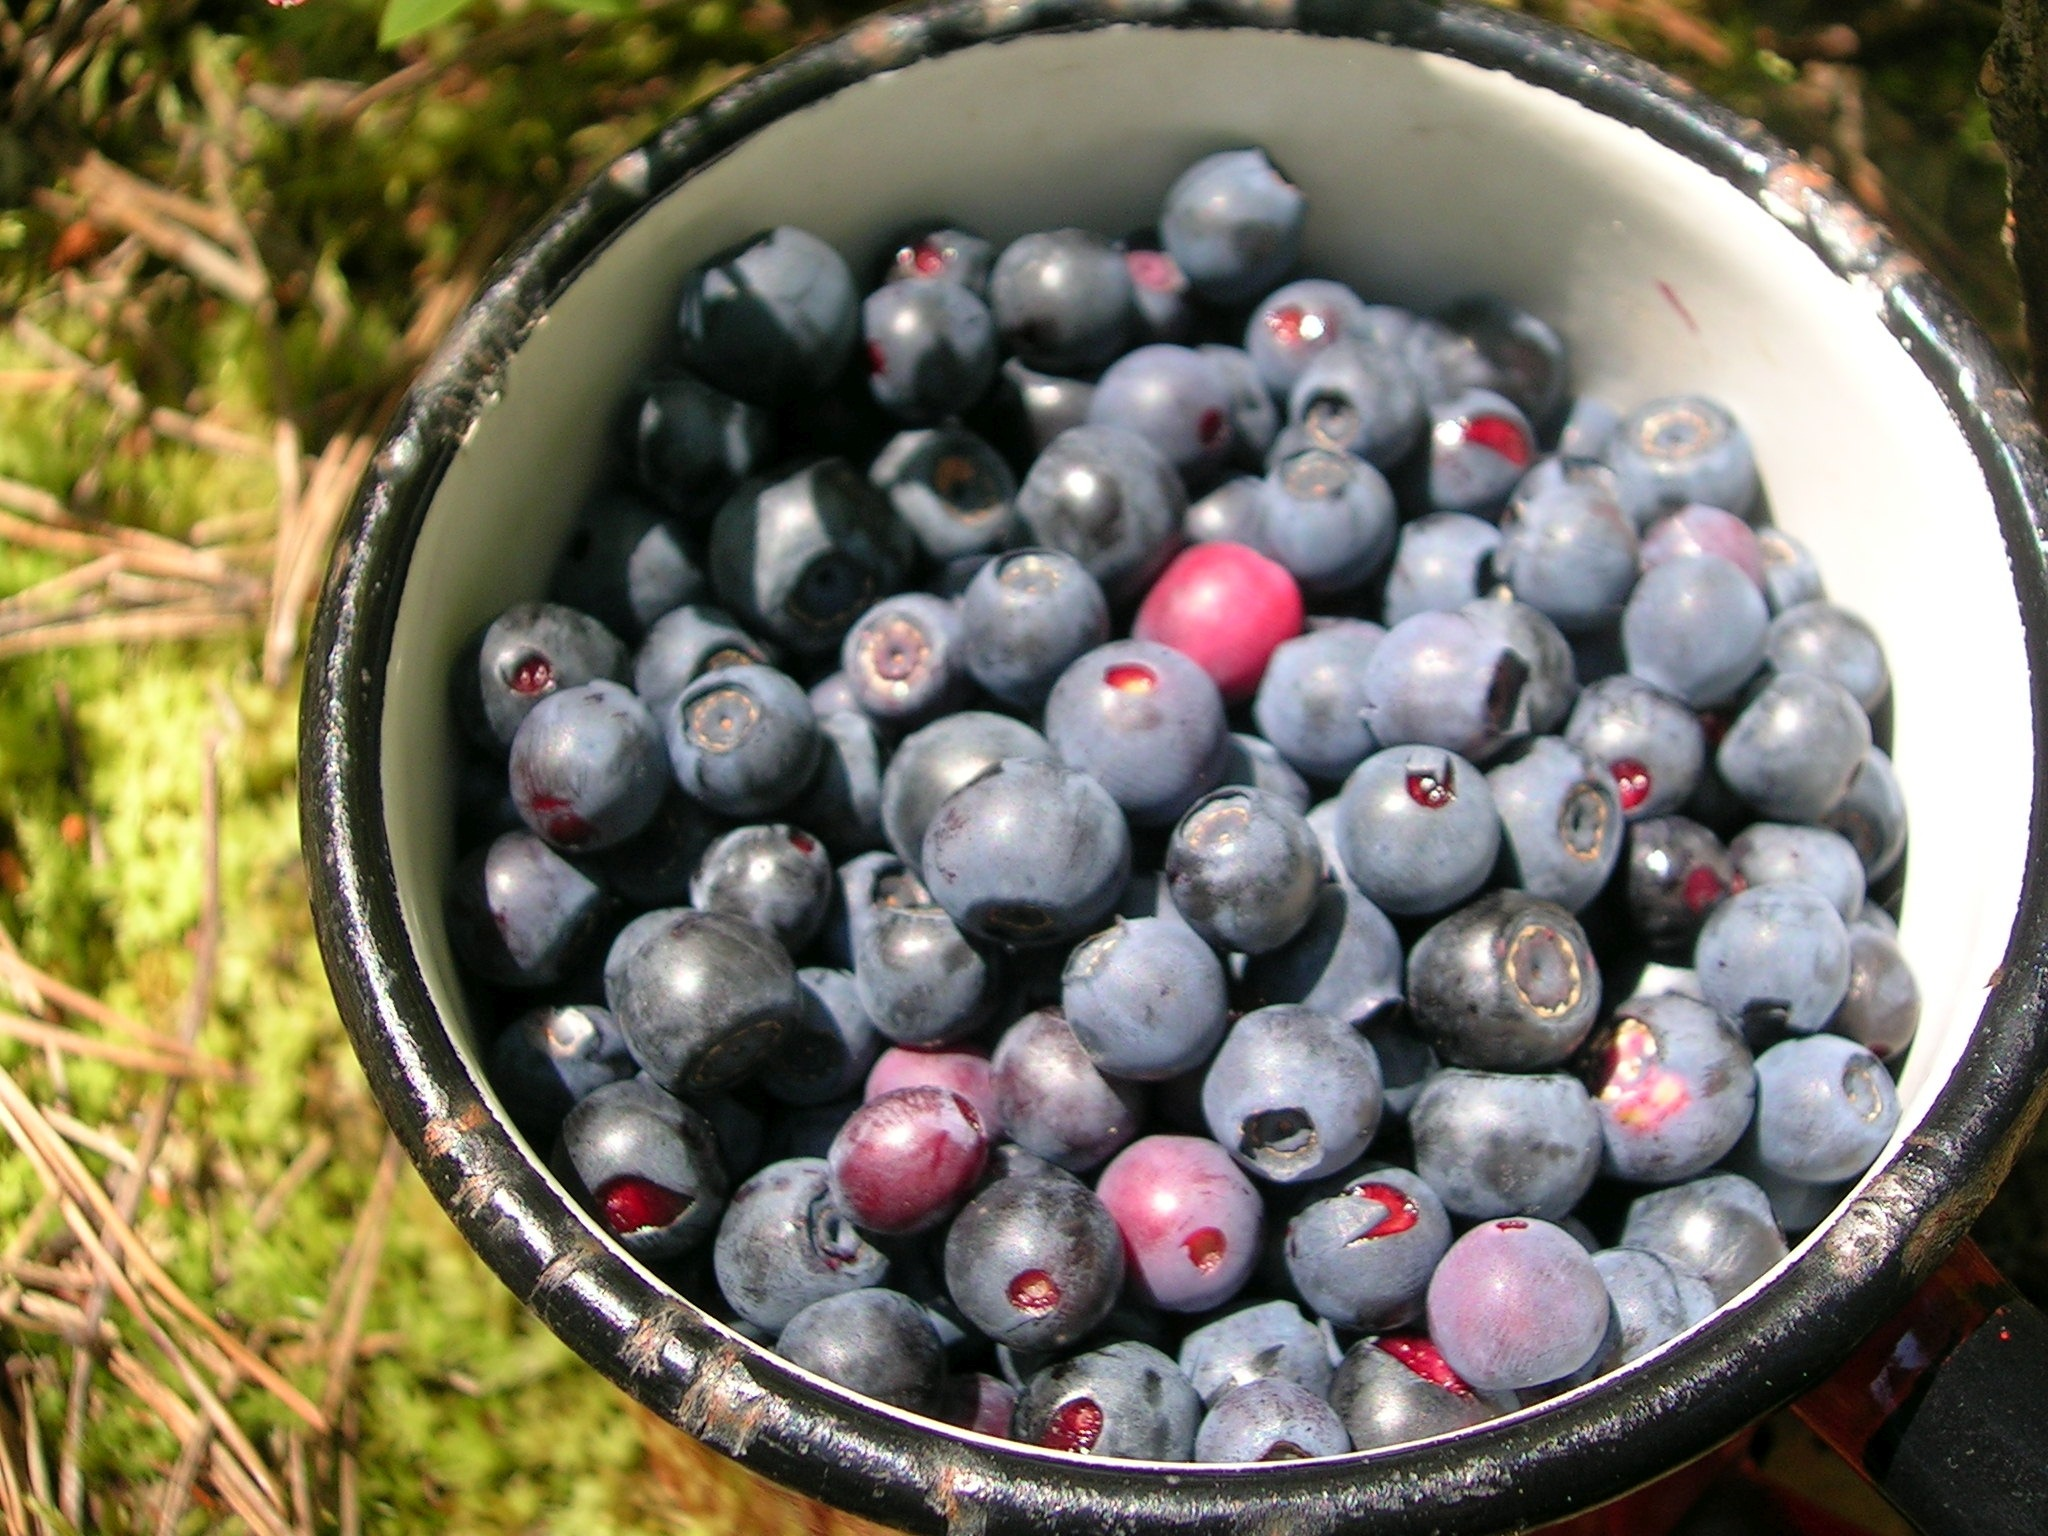 Blueberries in southern california